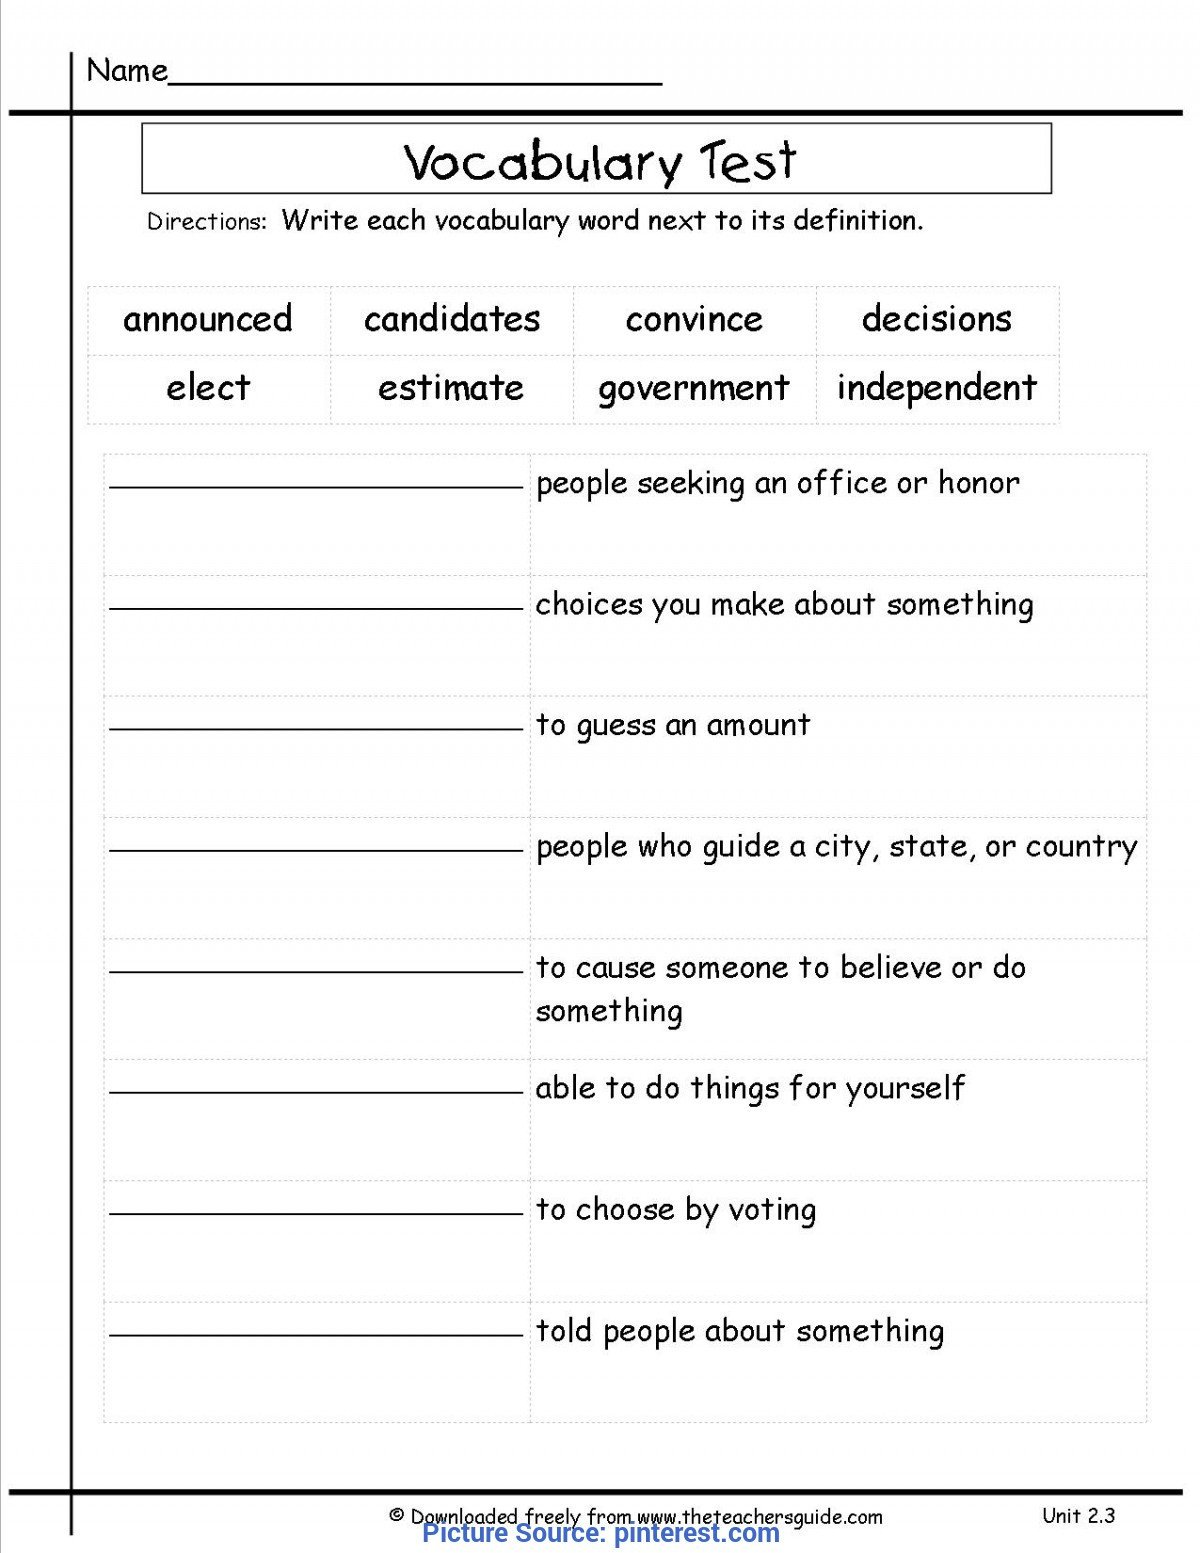 language arts worksheets 3rd grade for all dow ota tech trending activities site words